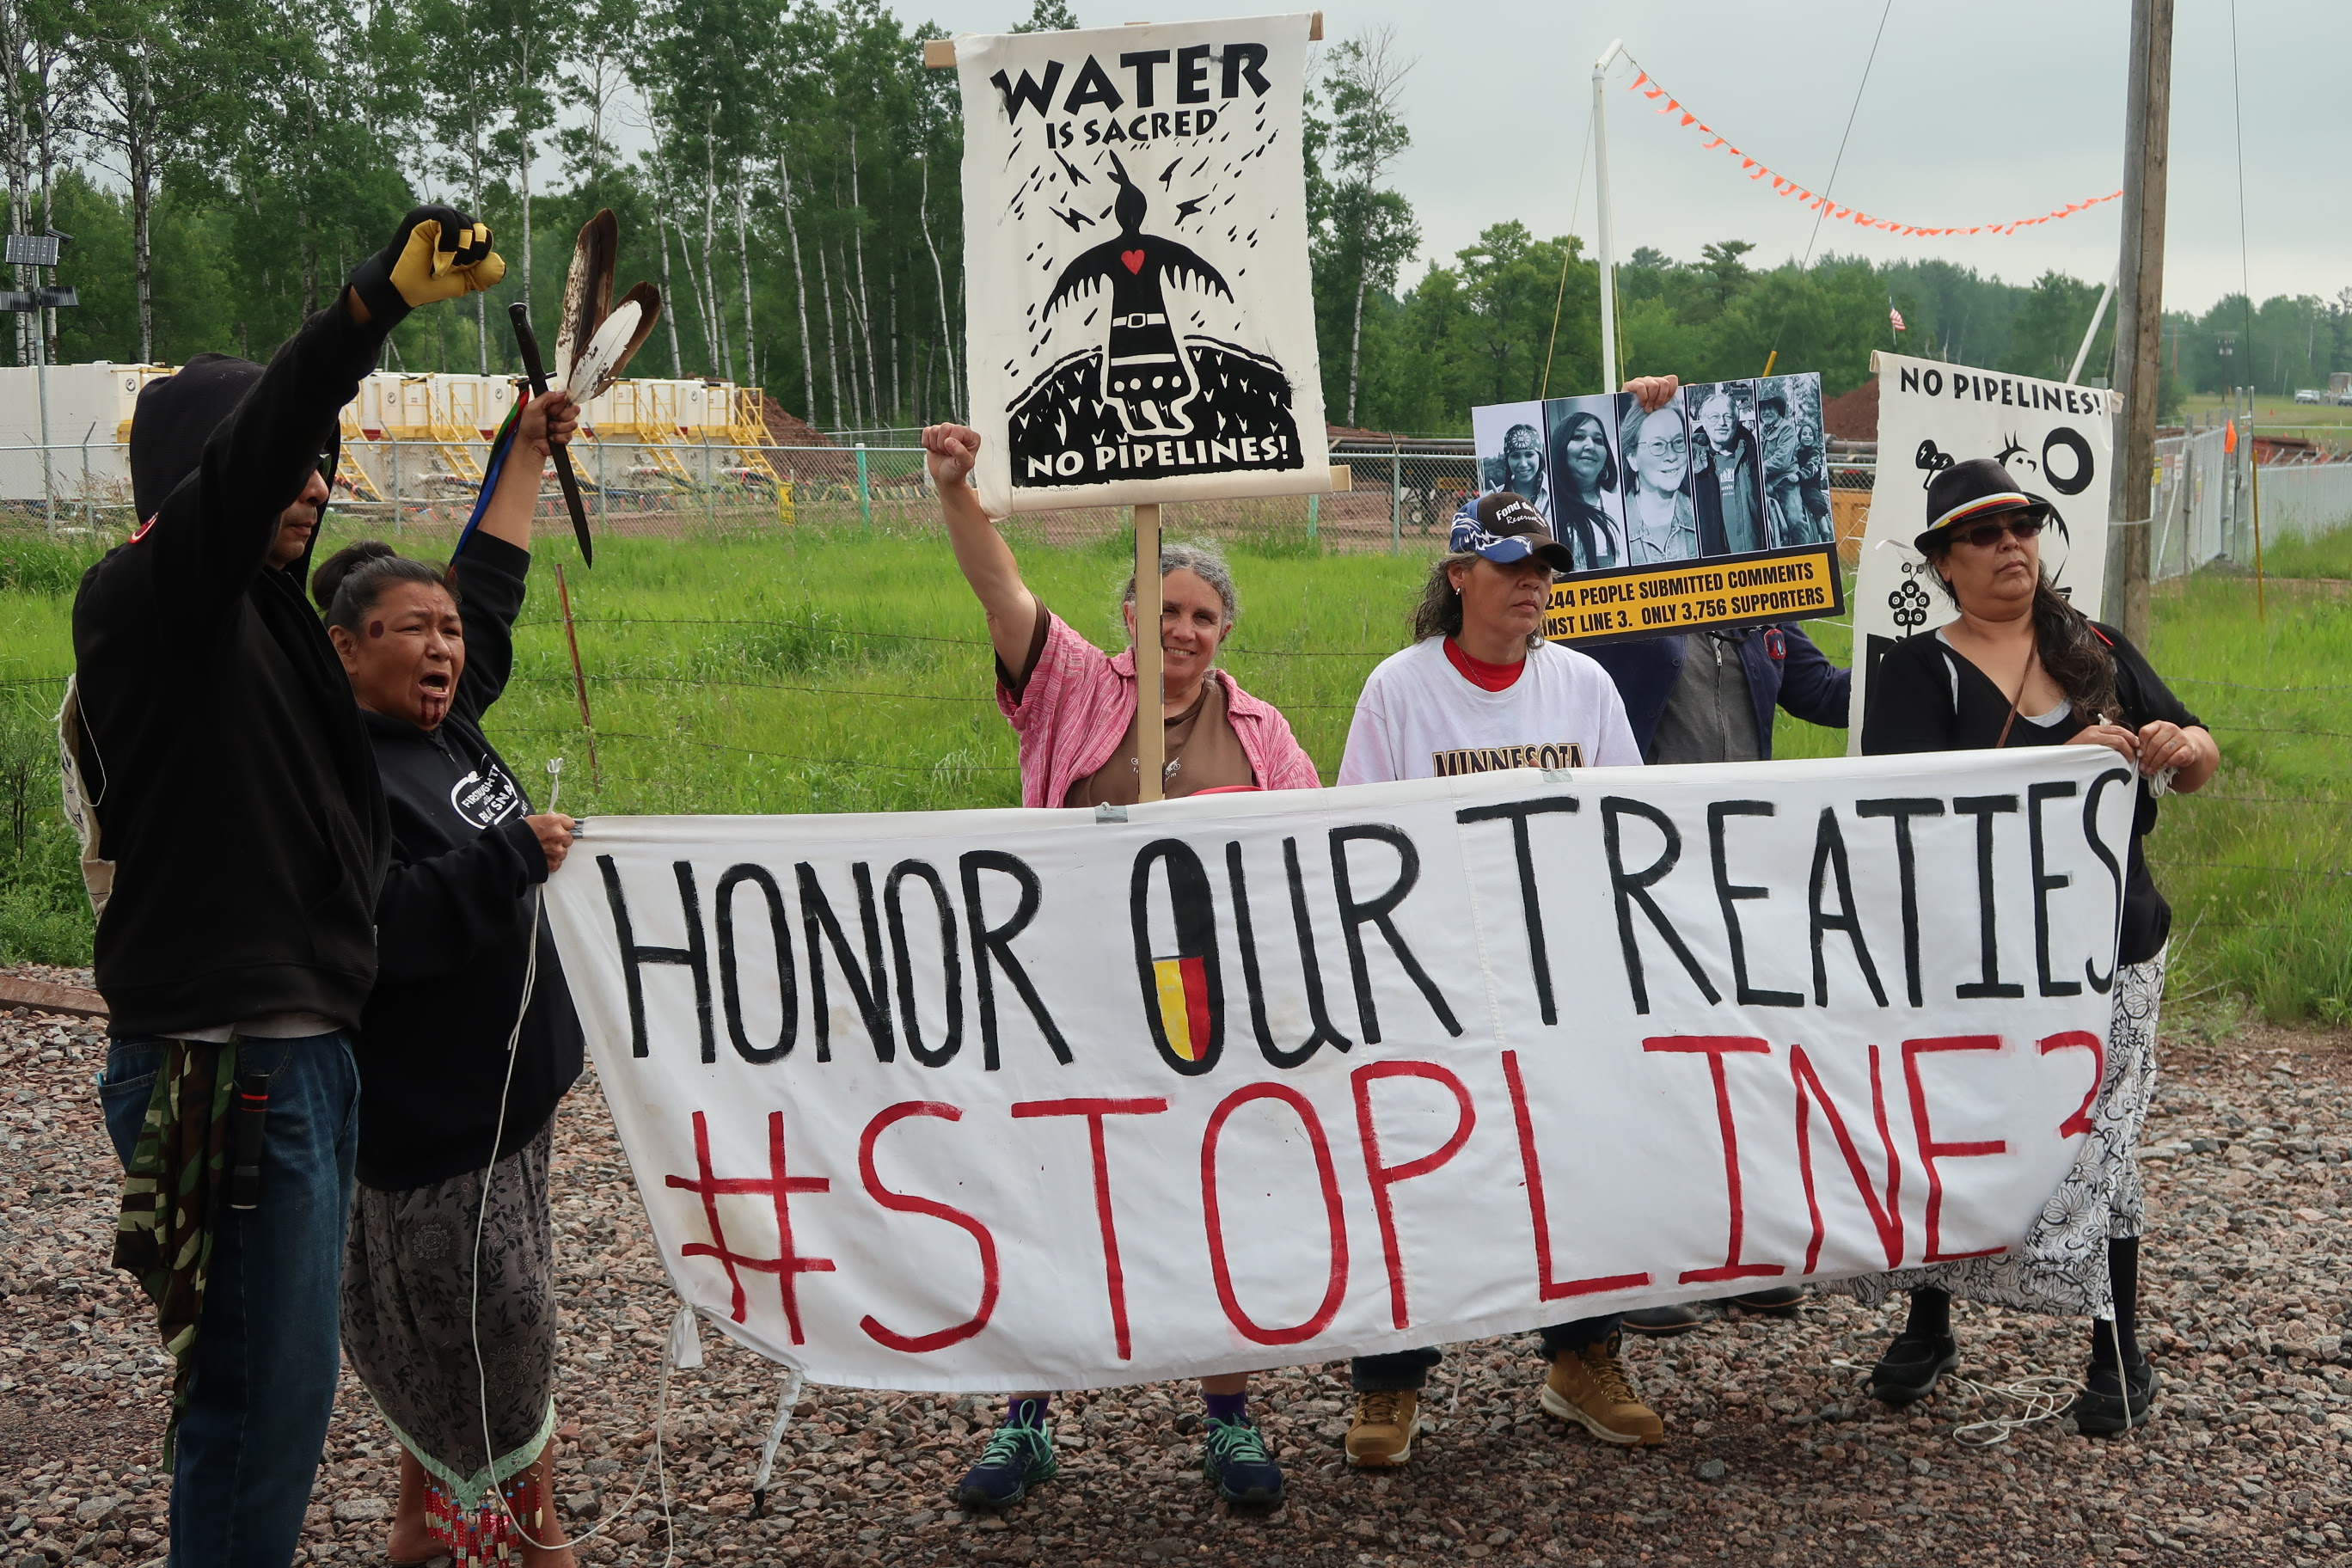 Enbridge Pipeline Opponents Vow To Stop Line 3 Replacement At   Wisconsin-Minnesota Border | Wisconsin Public Radio